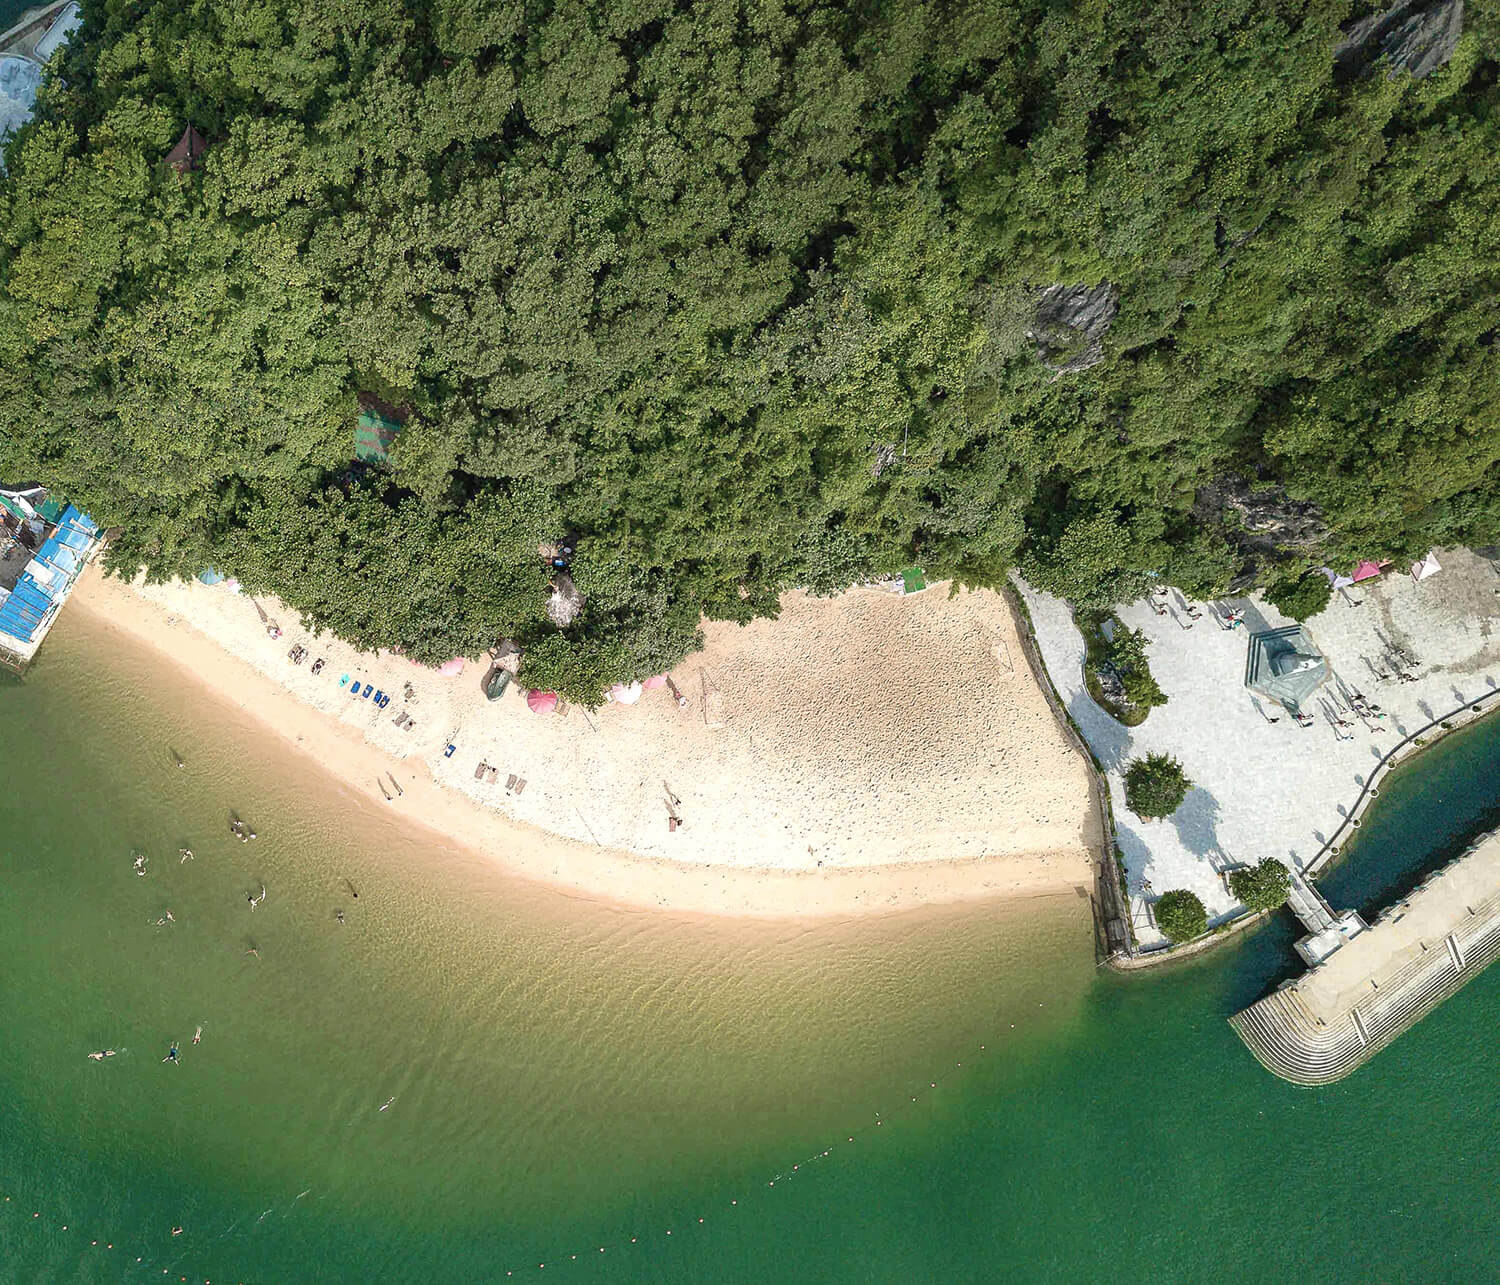 Swimming and relaxing on the beach at Halong Bay's Titop Island